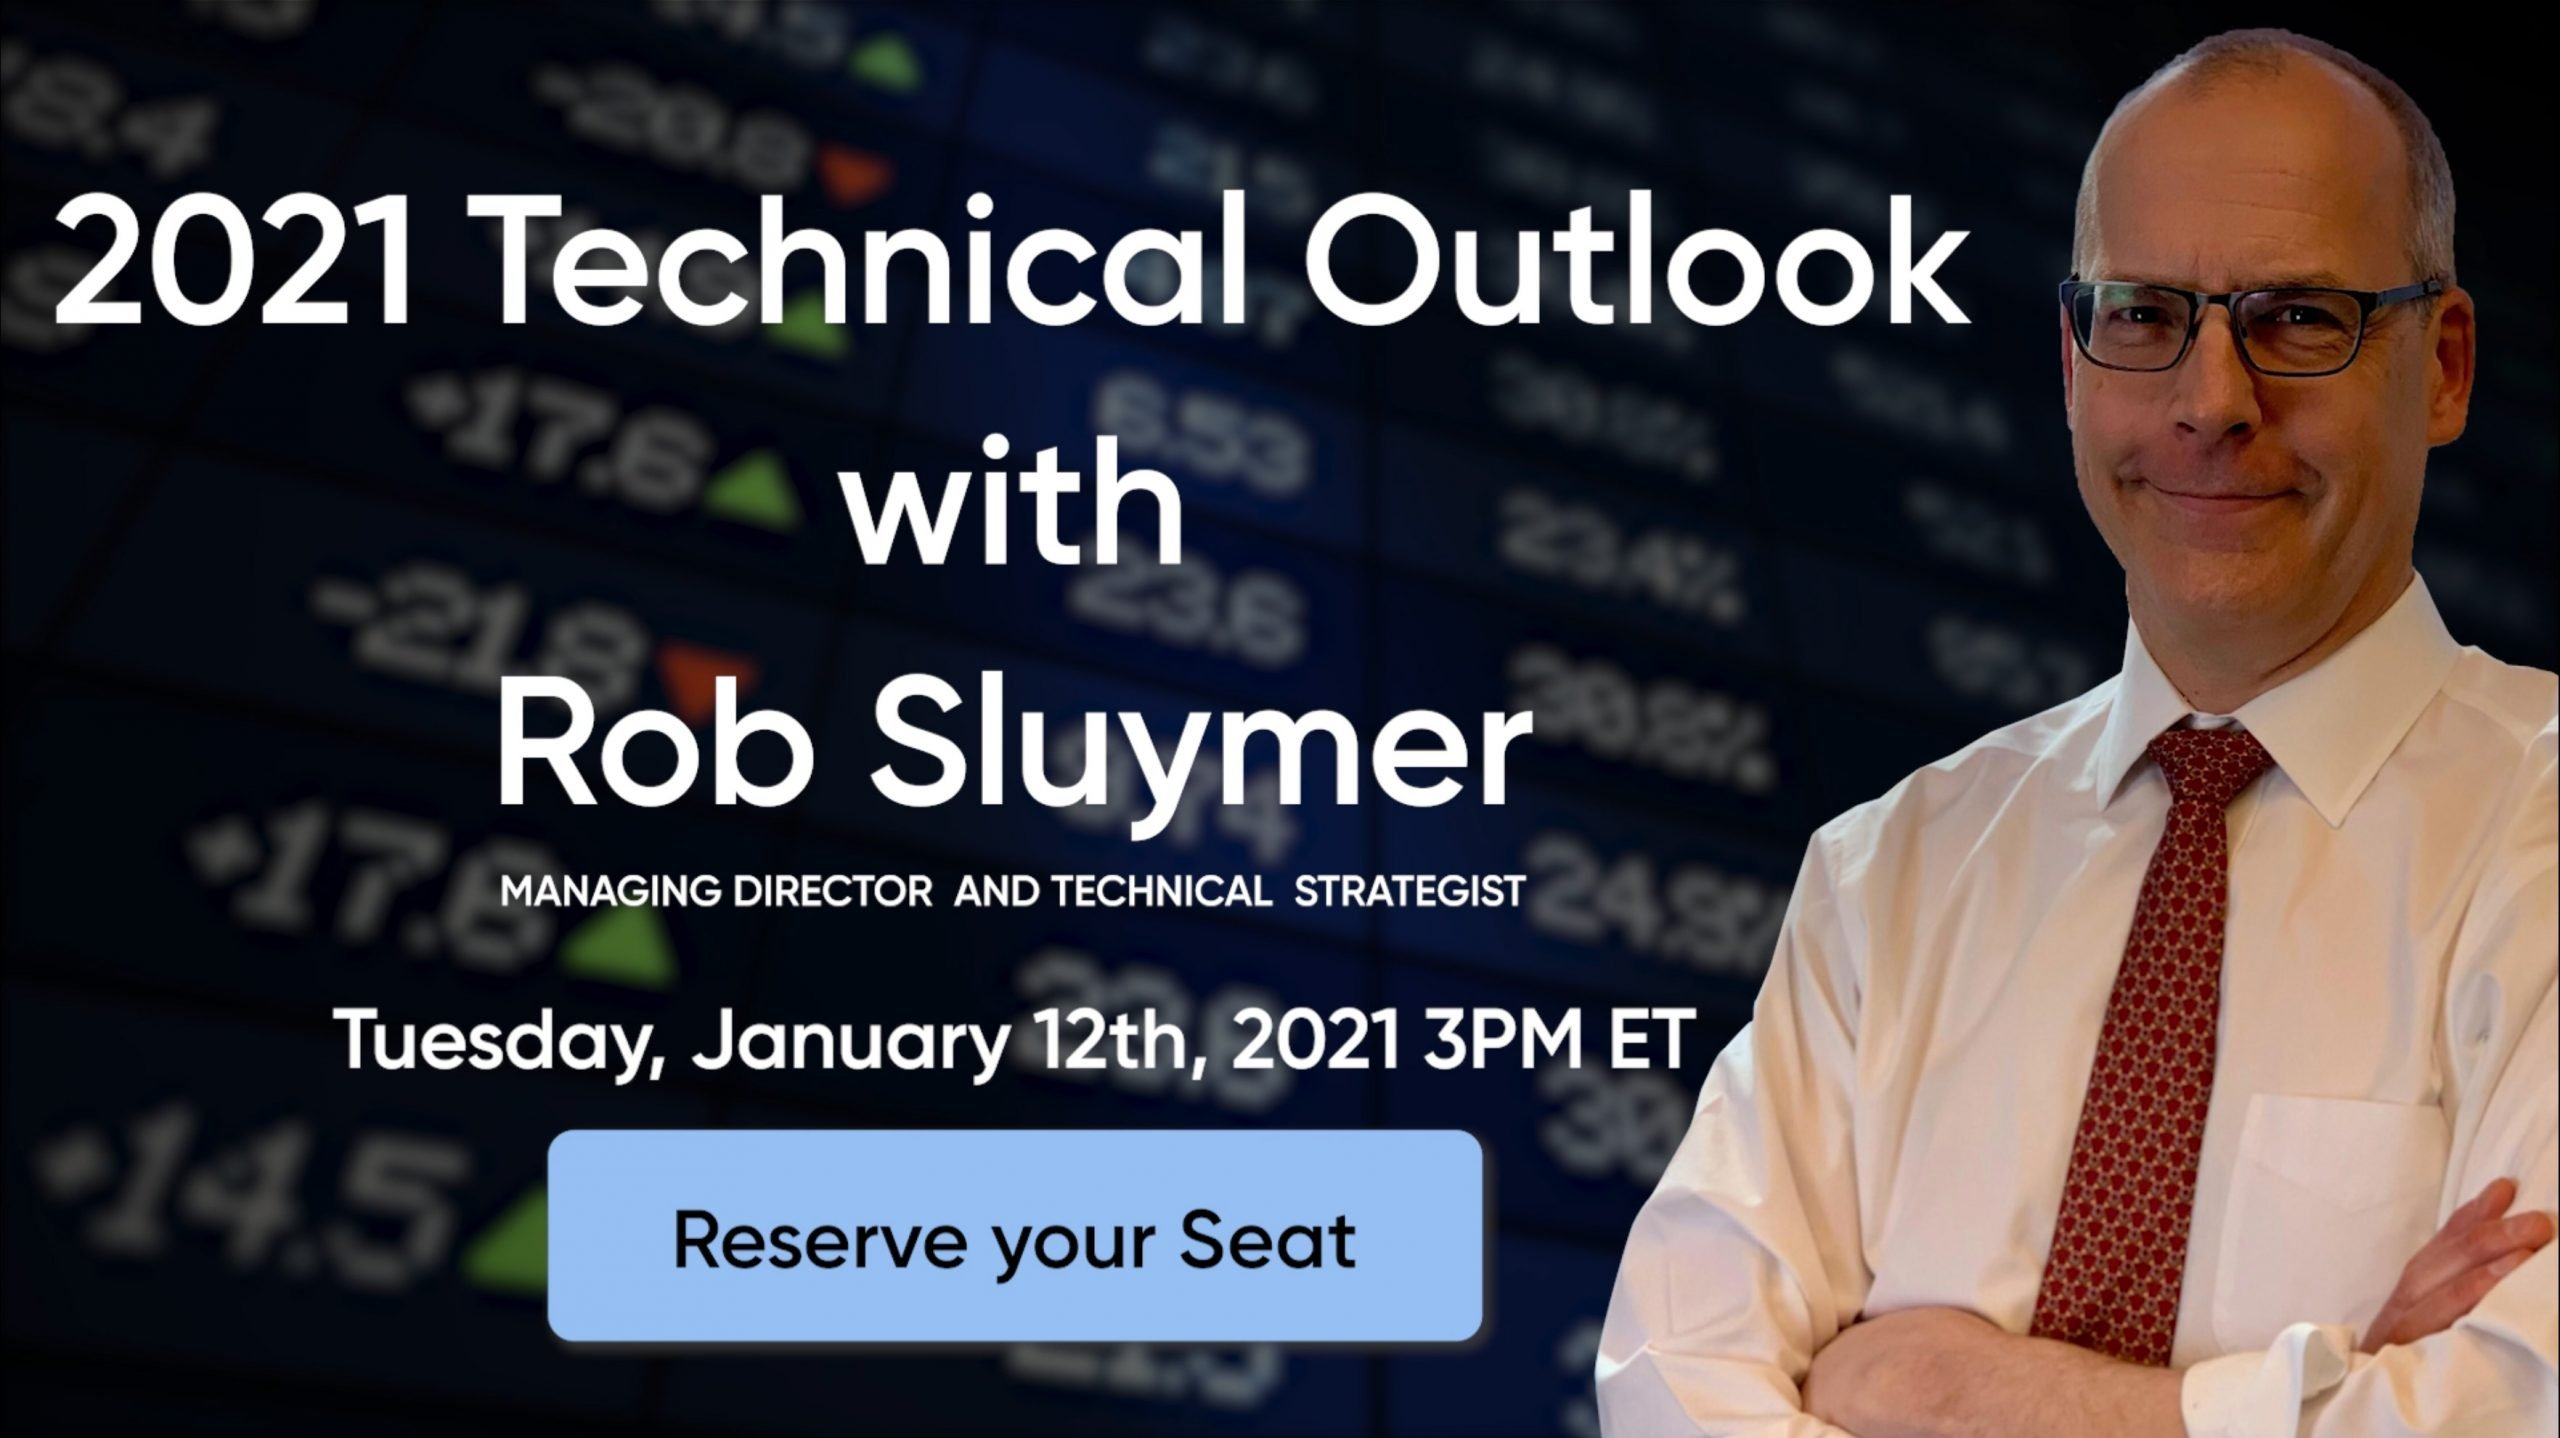 Webinar: Rob Sluymer's 2021 Technical Outlook